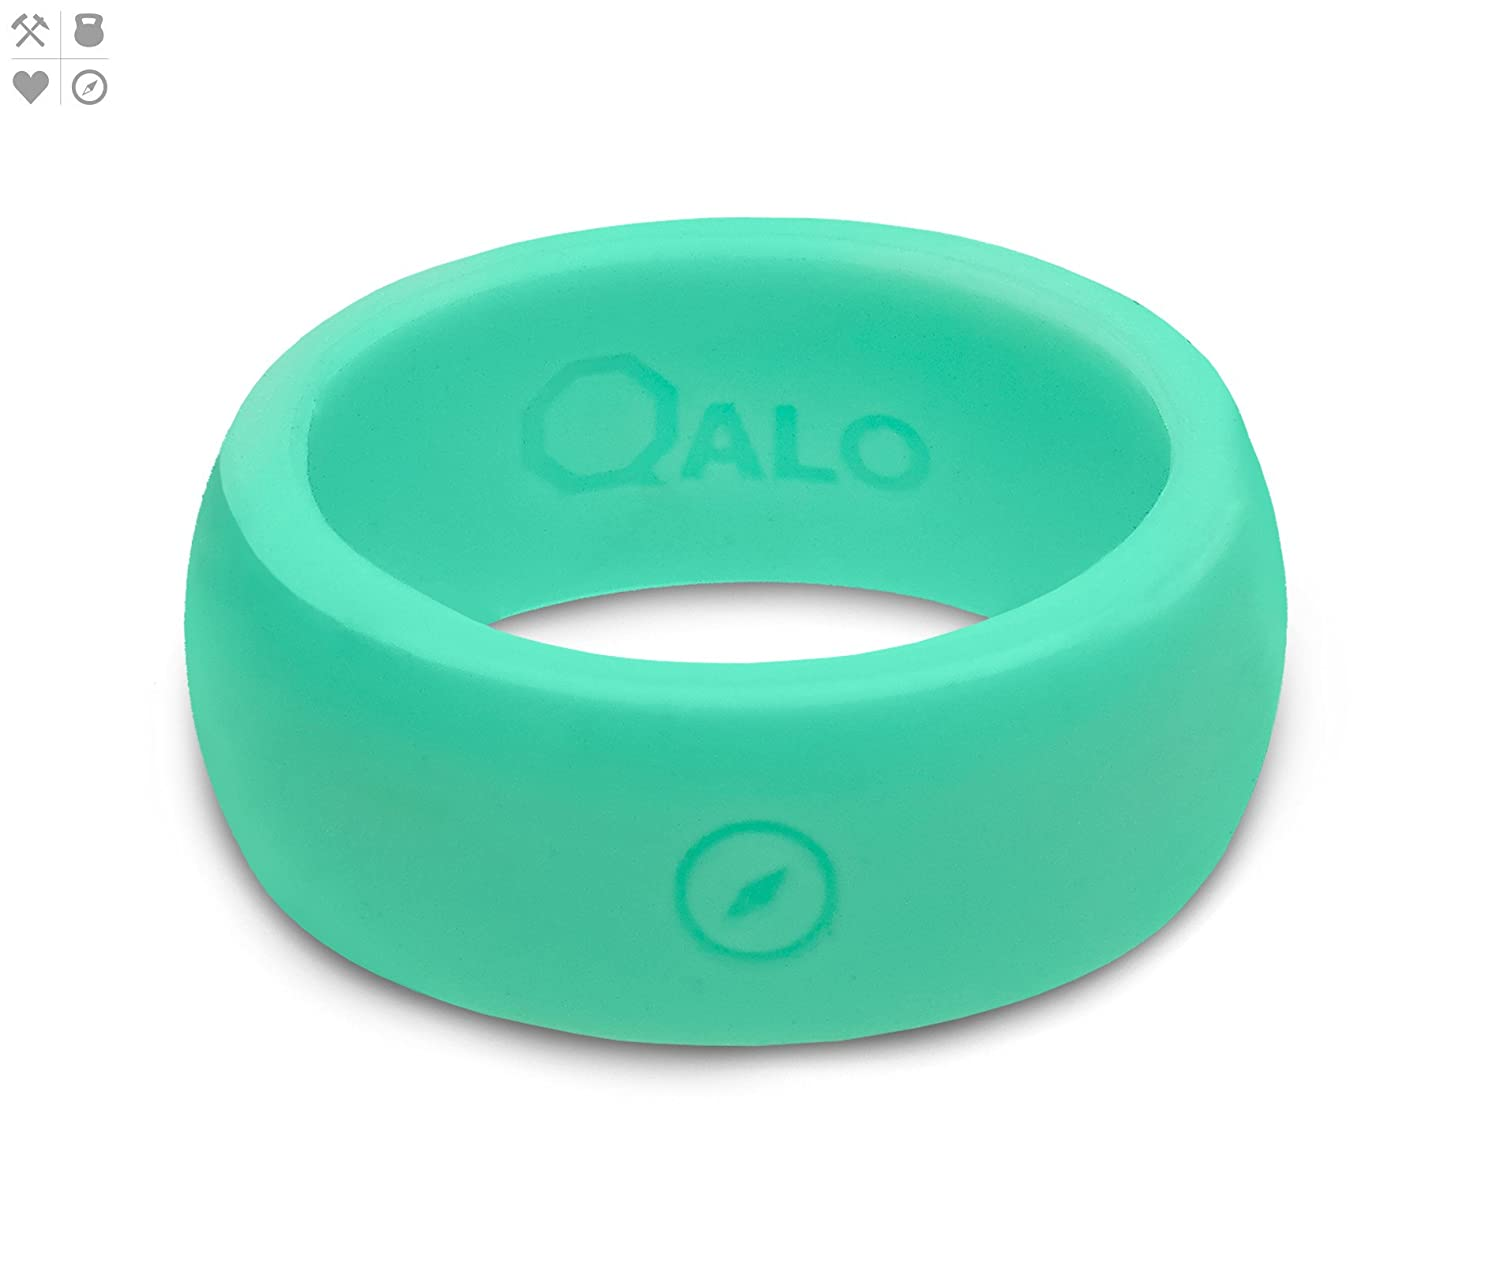 B safety wedding band Amazon com QALO Silicone Rings For Men Safe Wedding Band Yoga Crossfit Rubber Ring Weight Lifting Training Exercise Fitness Firefighter